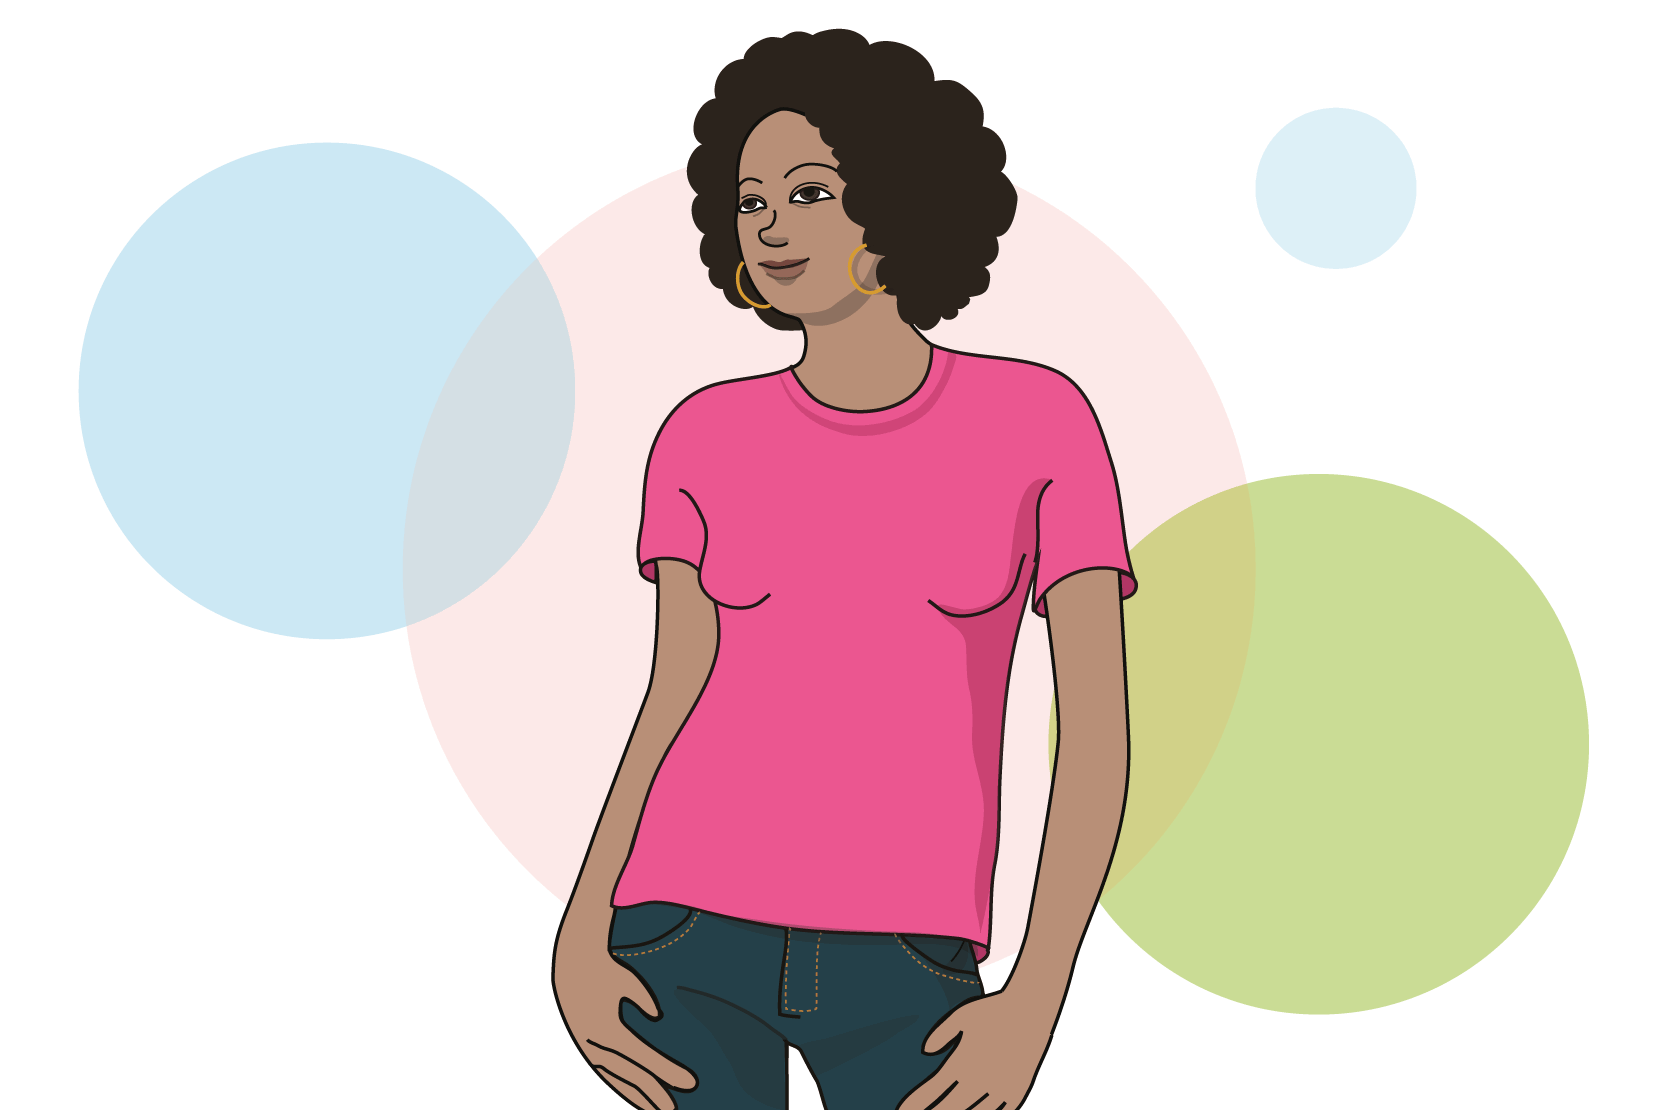 En person i jeans och t-shirt. Illustration.